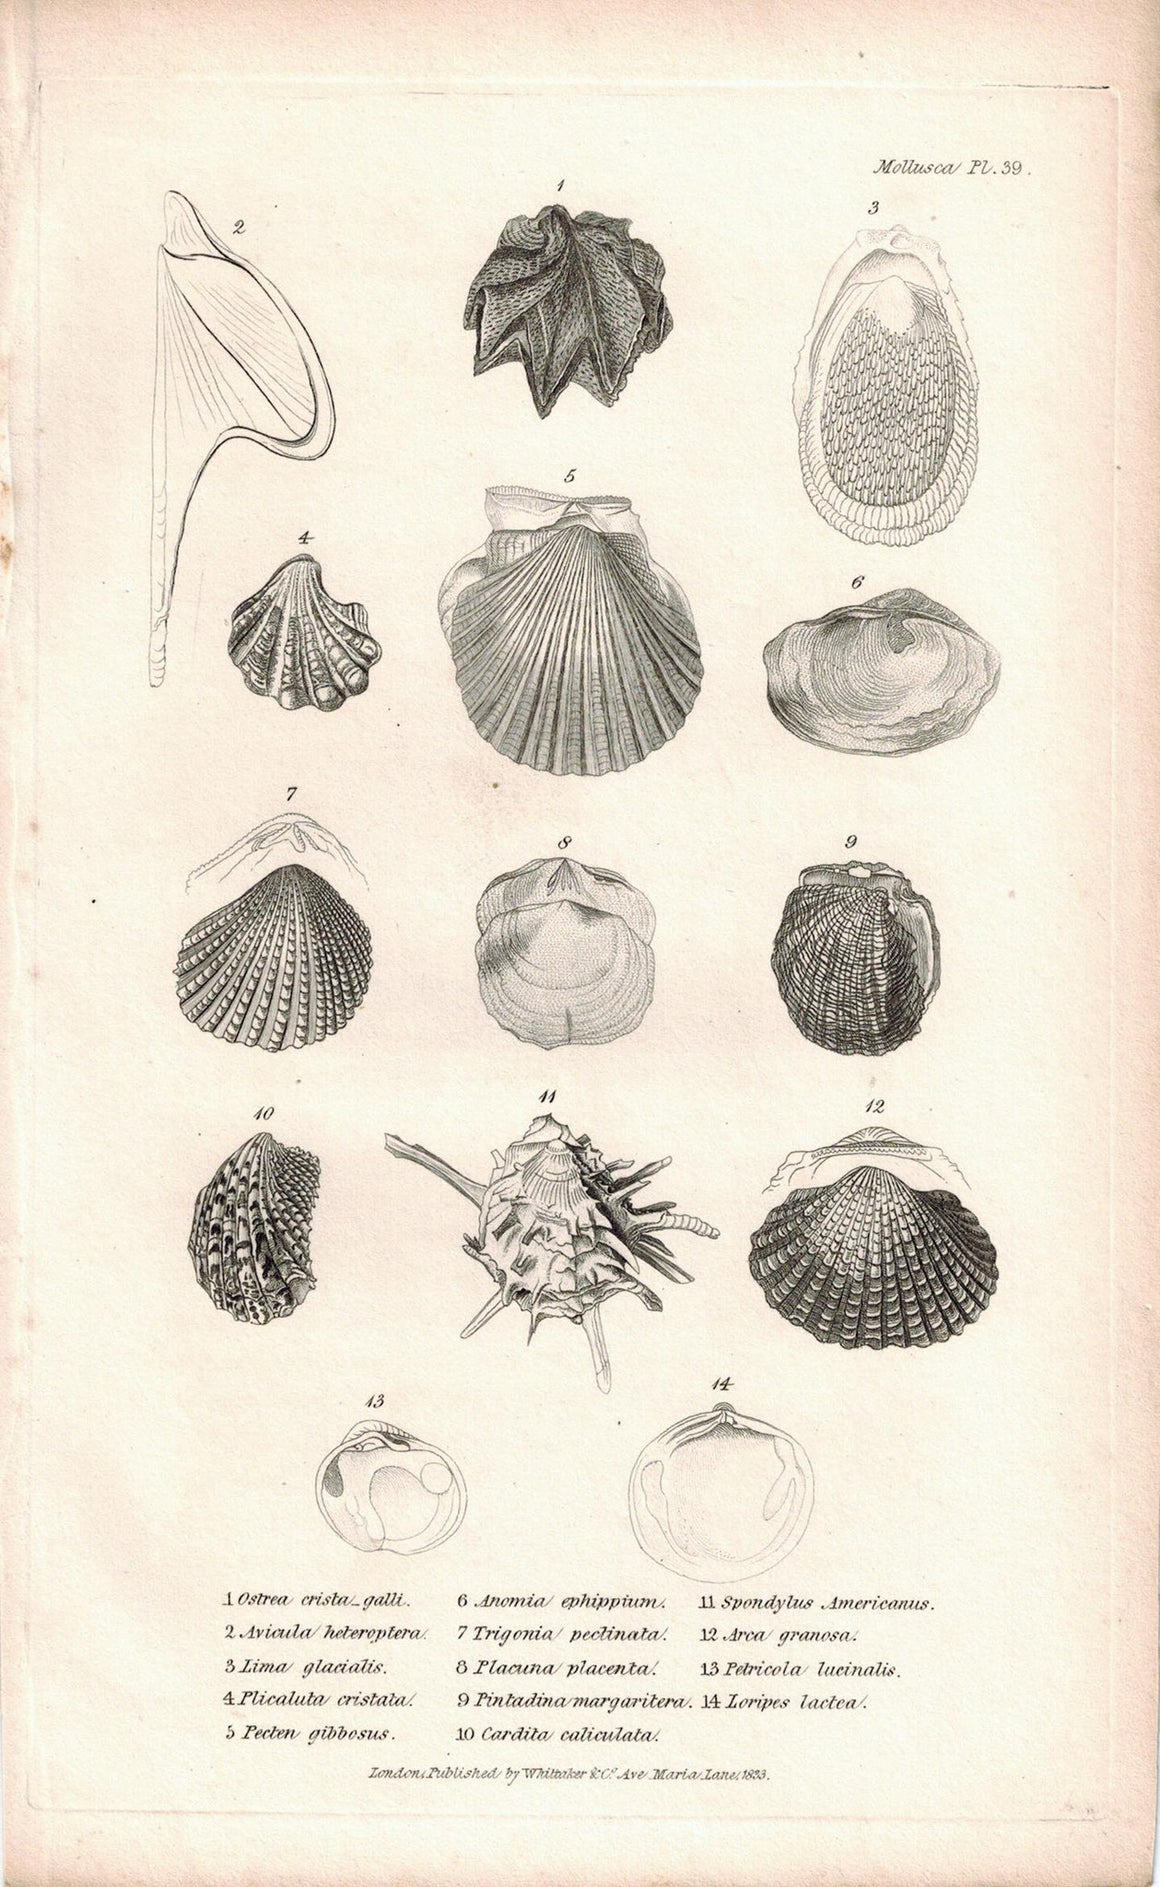 Sea Shell Mollusca Antique cuvier Print 1834 Pl 39